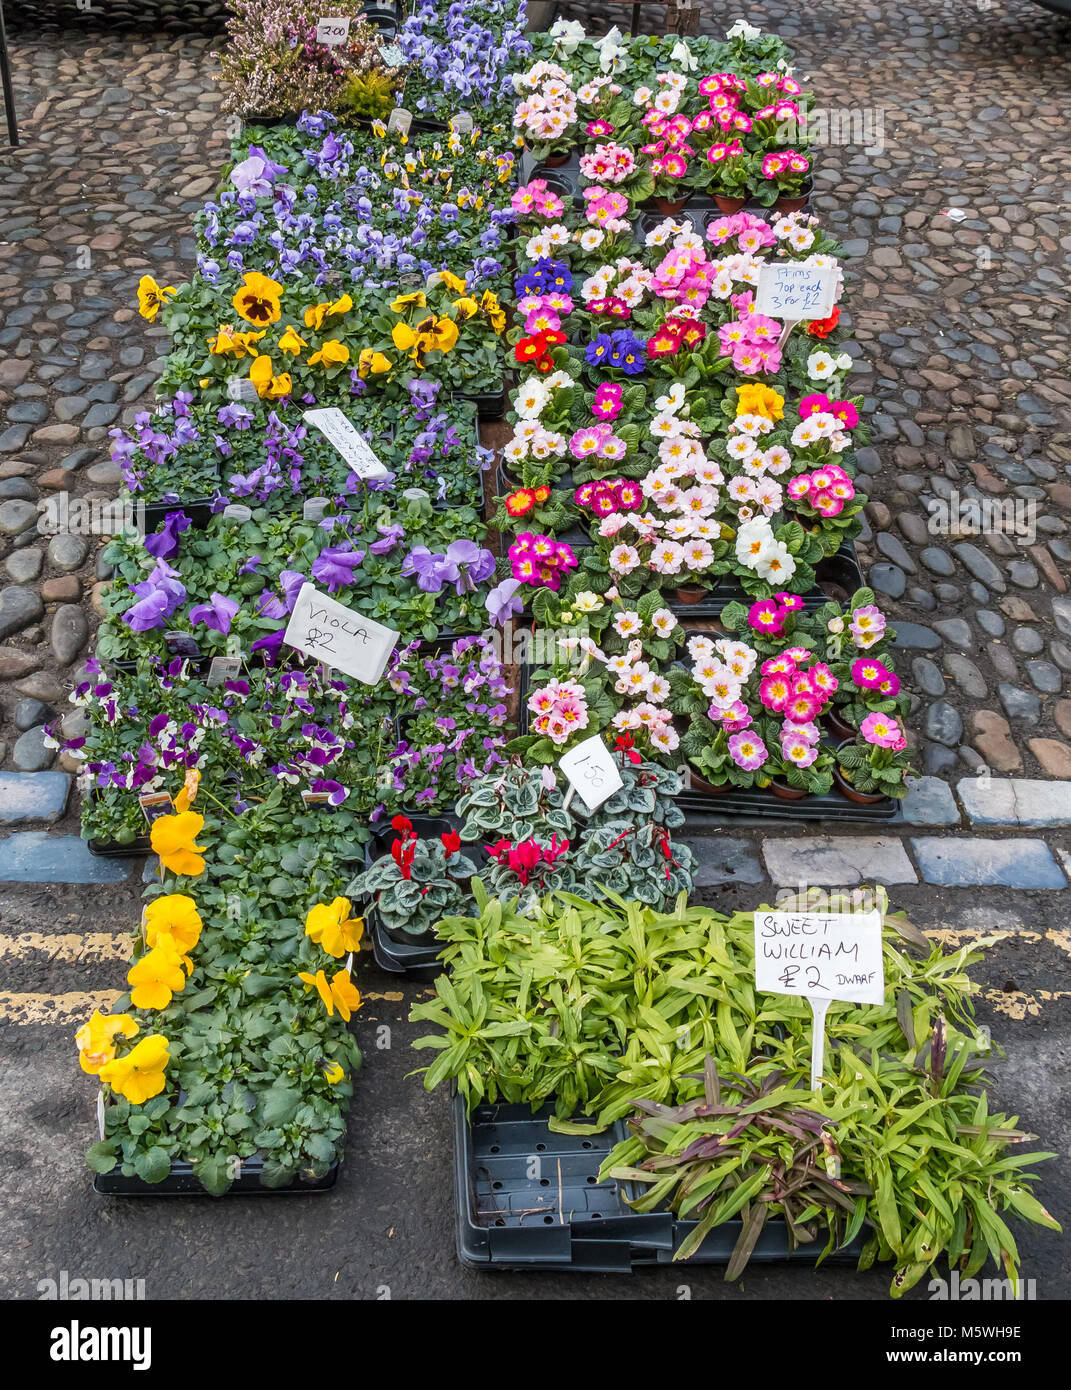 A colourful display of winter and spring flowering garden plants for sale on a street market - Stock Image